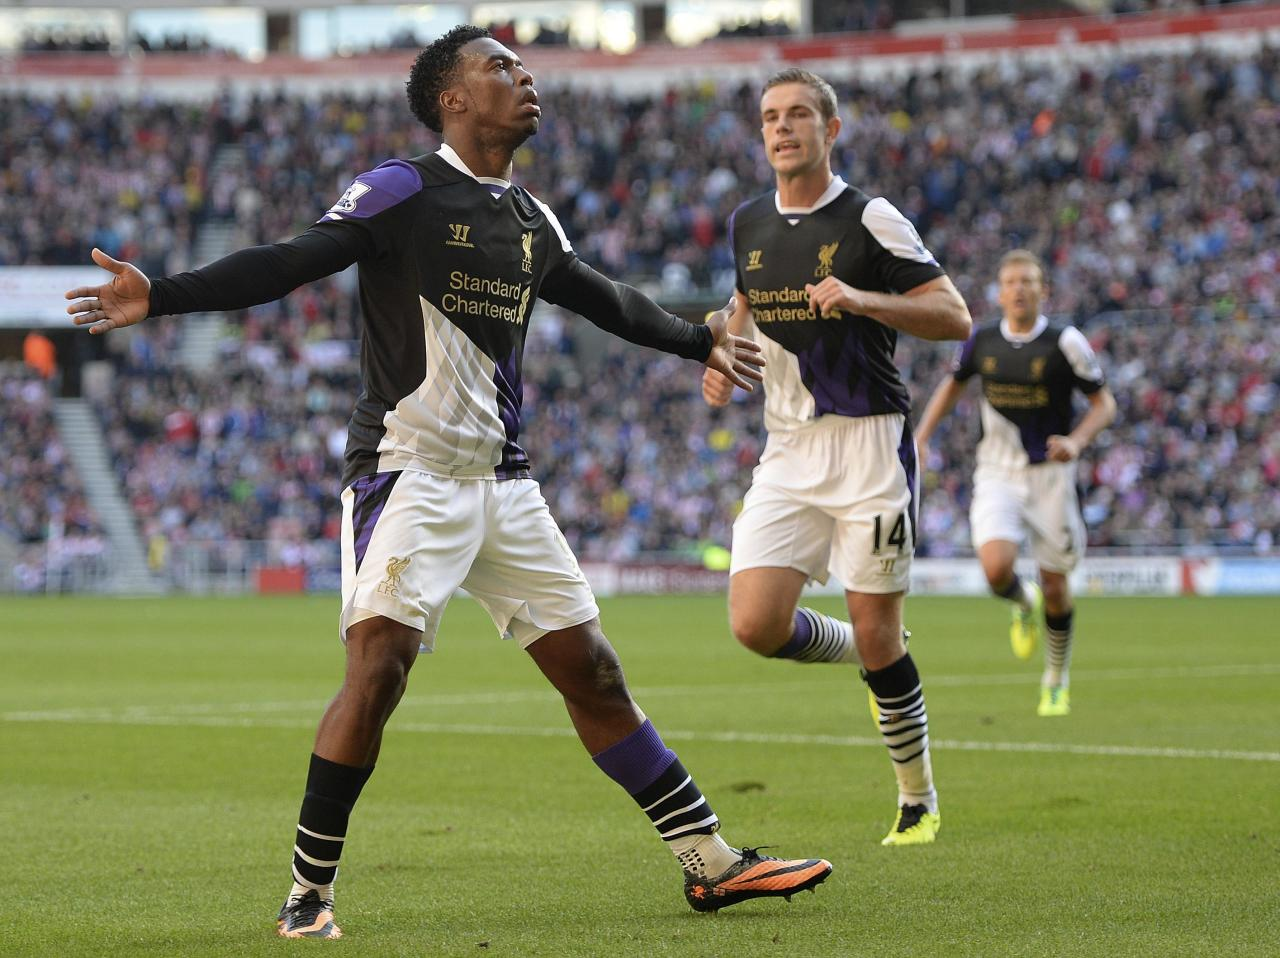 """Liverpool's Daniel Sturridge (L) celebrates scoring against Sunderland during their English Premier League soccer match at The Stadium of Light in Sunderland, northern England, September 29, 2013. REUTERS/Nigel Roddis (BRITAIN - Tags: SPORT SOCCER) FOR EDITORIAL USE ONLY. NOT FOR SALE FOR MARKETING OR ADVERTISING CAMPAIGNS. NO USE WITH UNAUTHORIZED AUDIO, VIDEO, DATA, FIXTURE LISTS, CLUB/LEAGUE LOGOS OR """"LIVE"""" SERVICES. ONLINE IN-MATCH USE LIMITED TO 45 IMAGES, NO VIDEO EMULATION. NO USE IN BETTING, GAMES OR SINGLE CLUB/LEAGUE/PLAYER PUBLICATIONS"""